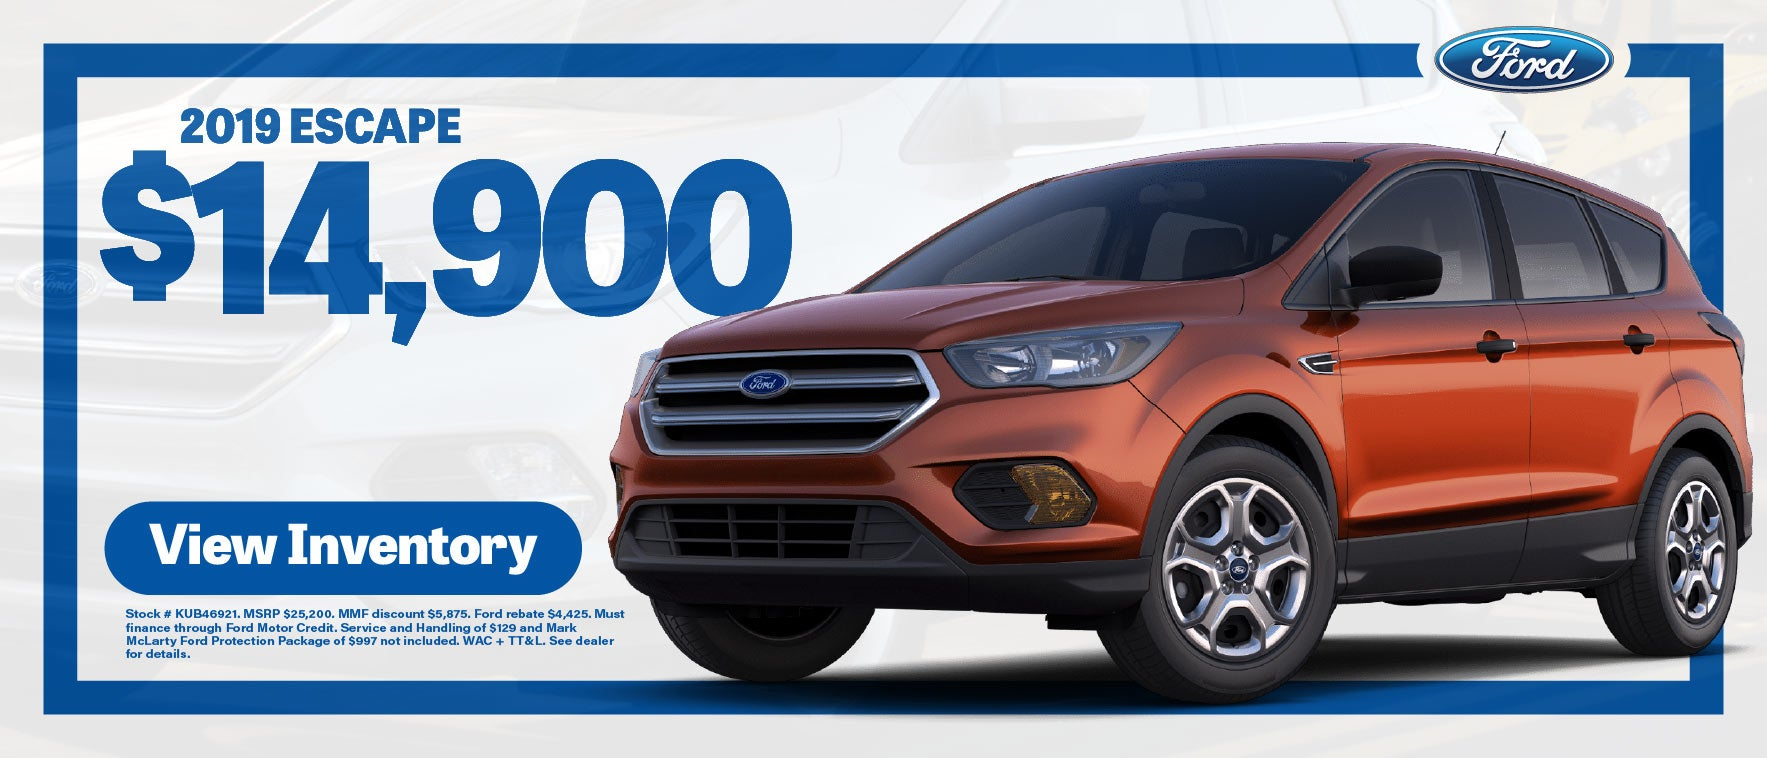 Ford Dealer Locator >> Ford Dealer In North Little Rock Ar Used Cars North Little Rock